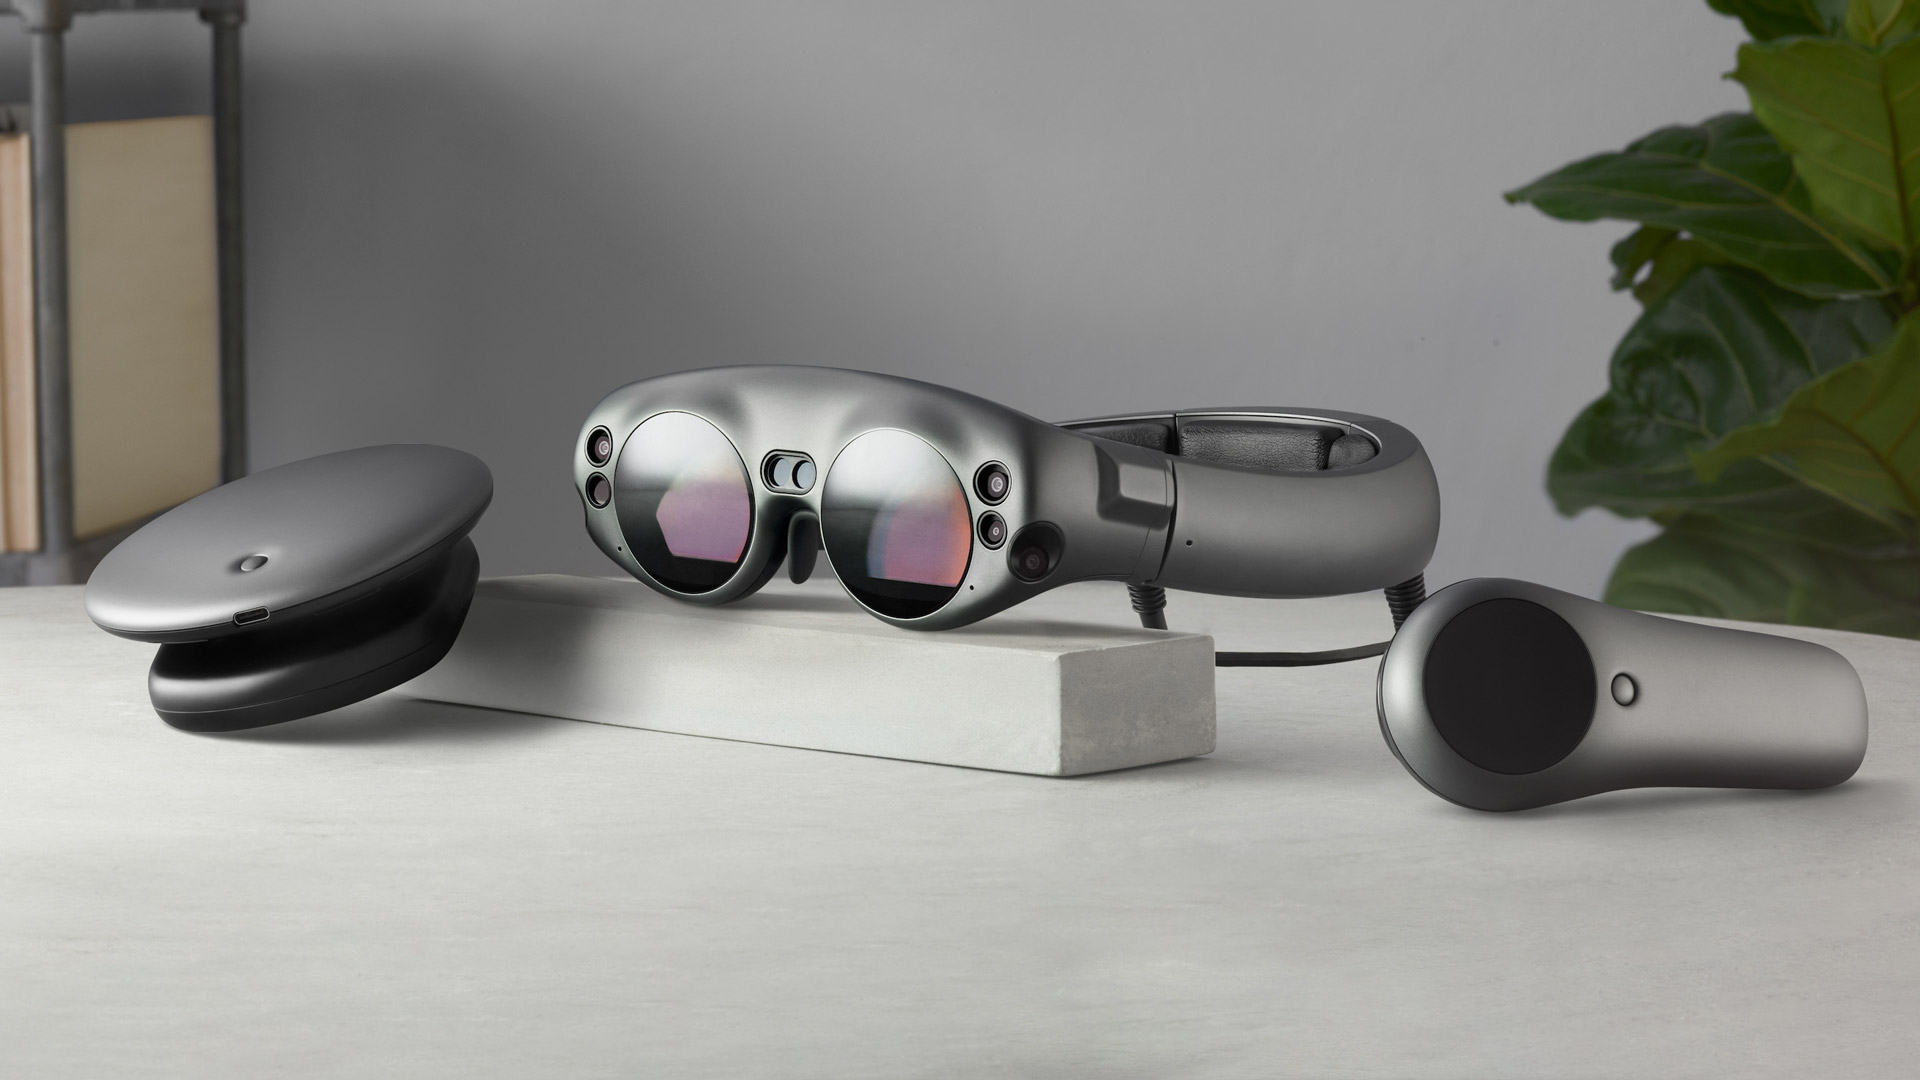 Magic Leap Received Over 6,000 Applications for Independent Creator Grant Program